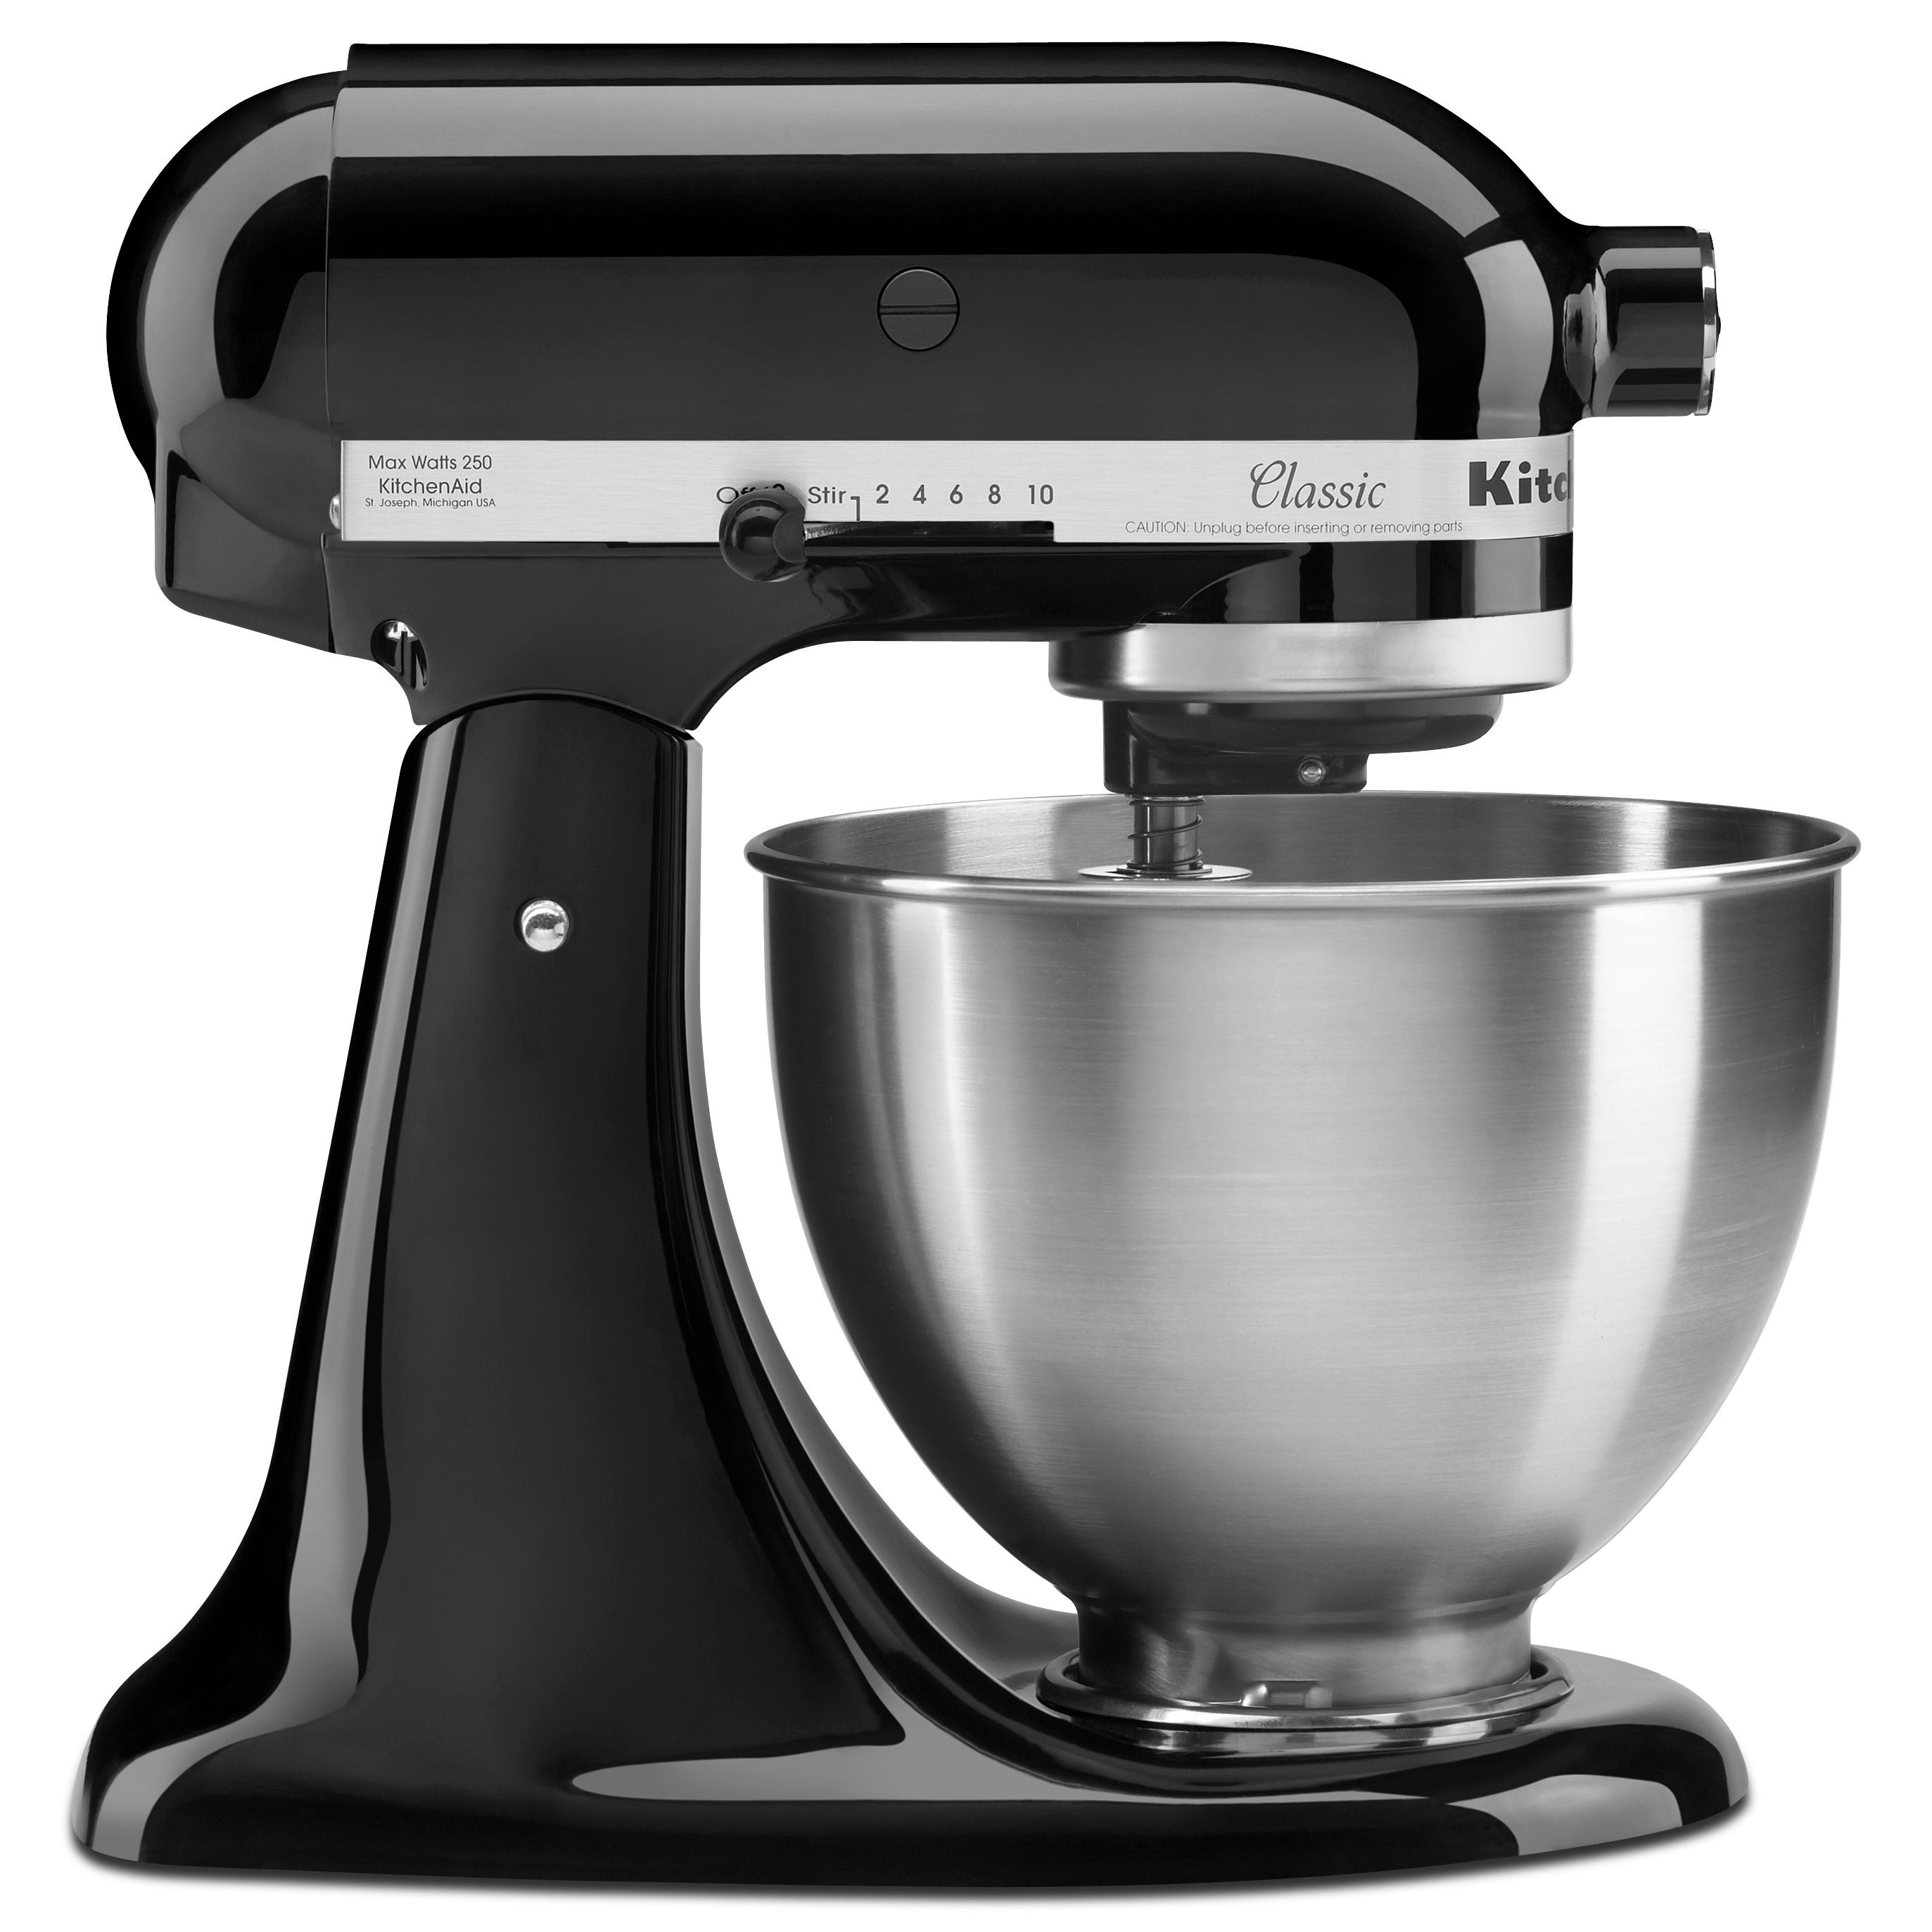 Brilliant Kitchenaid Countertop Mixer I For Inspiration Decorating